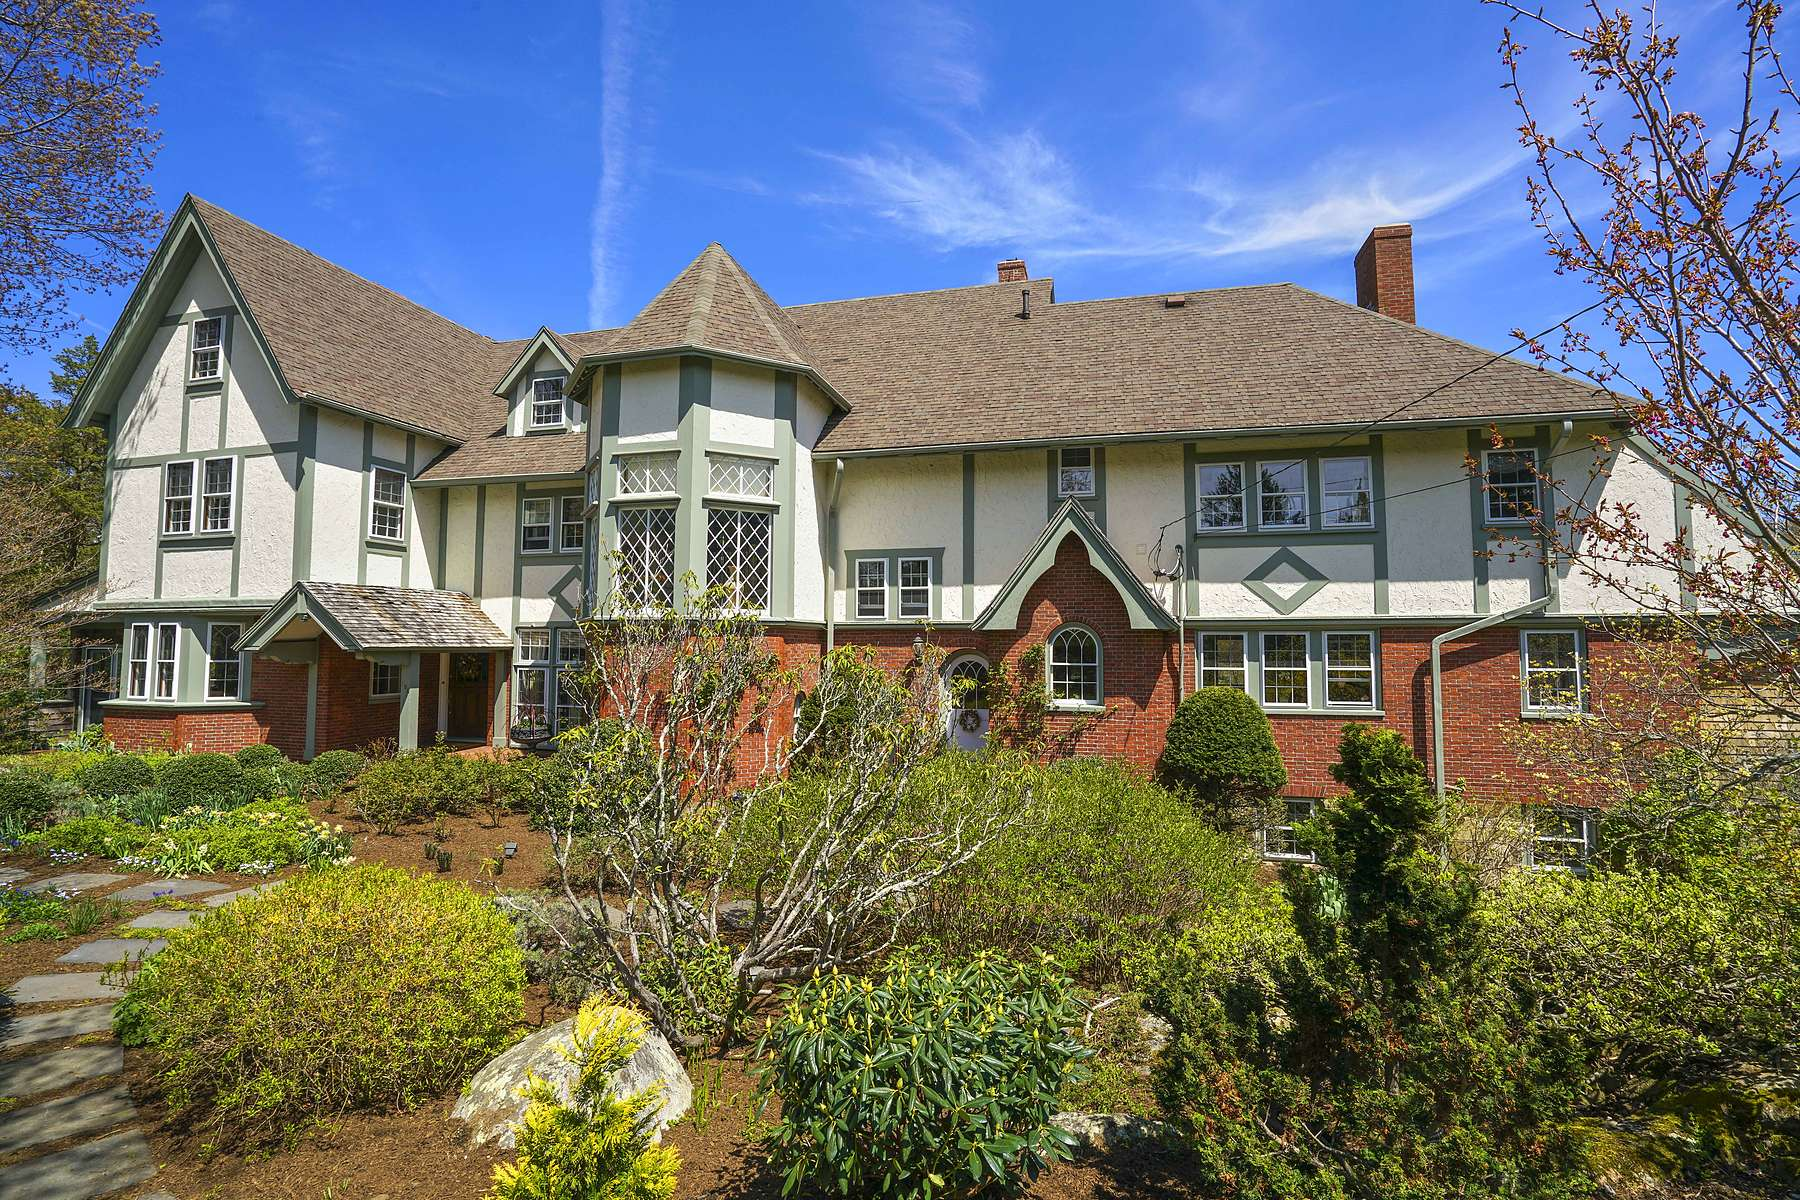 Single Family Home for Active at English Manor 180 Border St. Scituate, Massachusetts 02066 United States